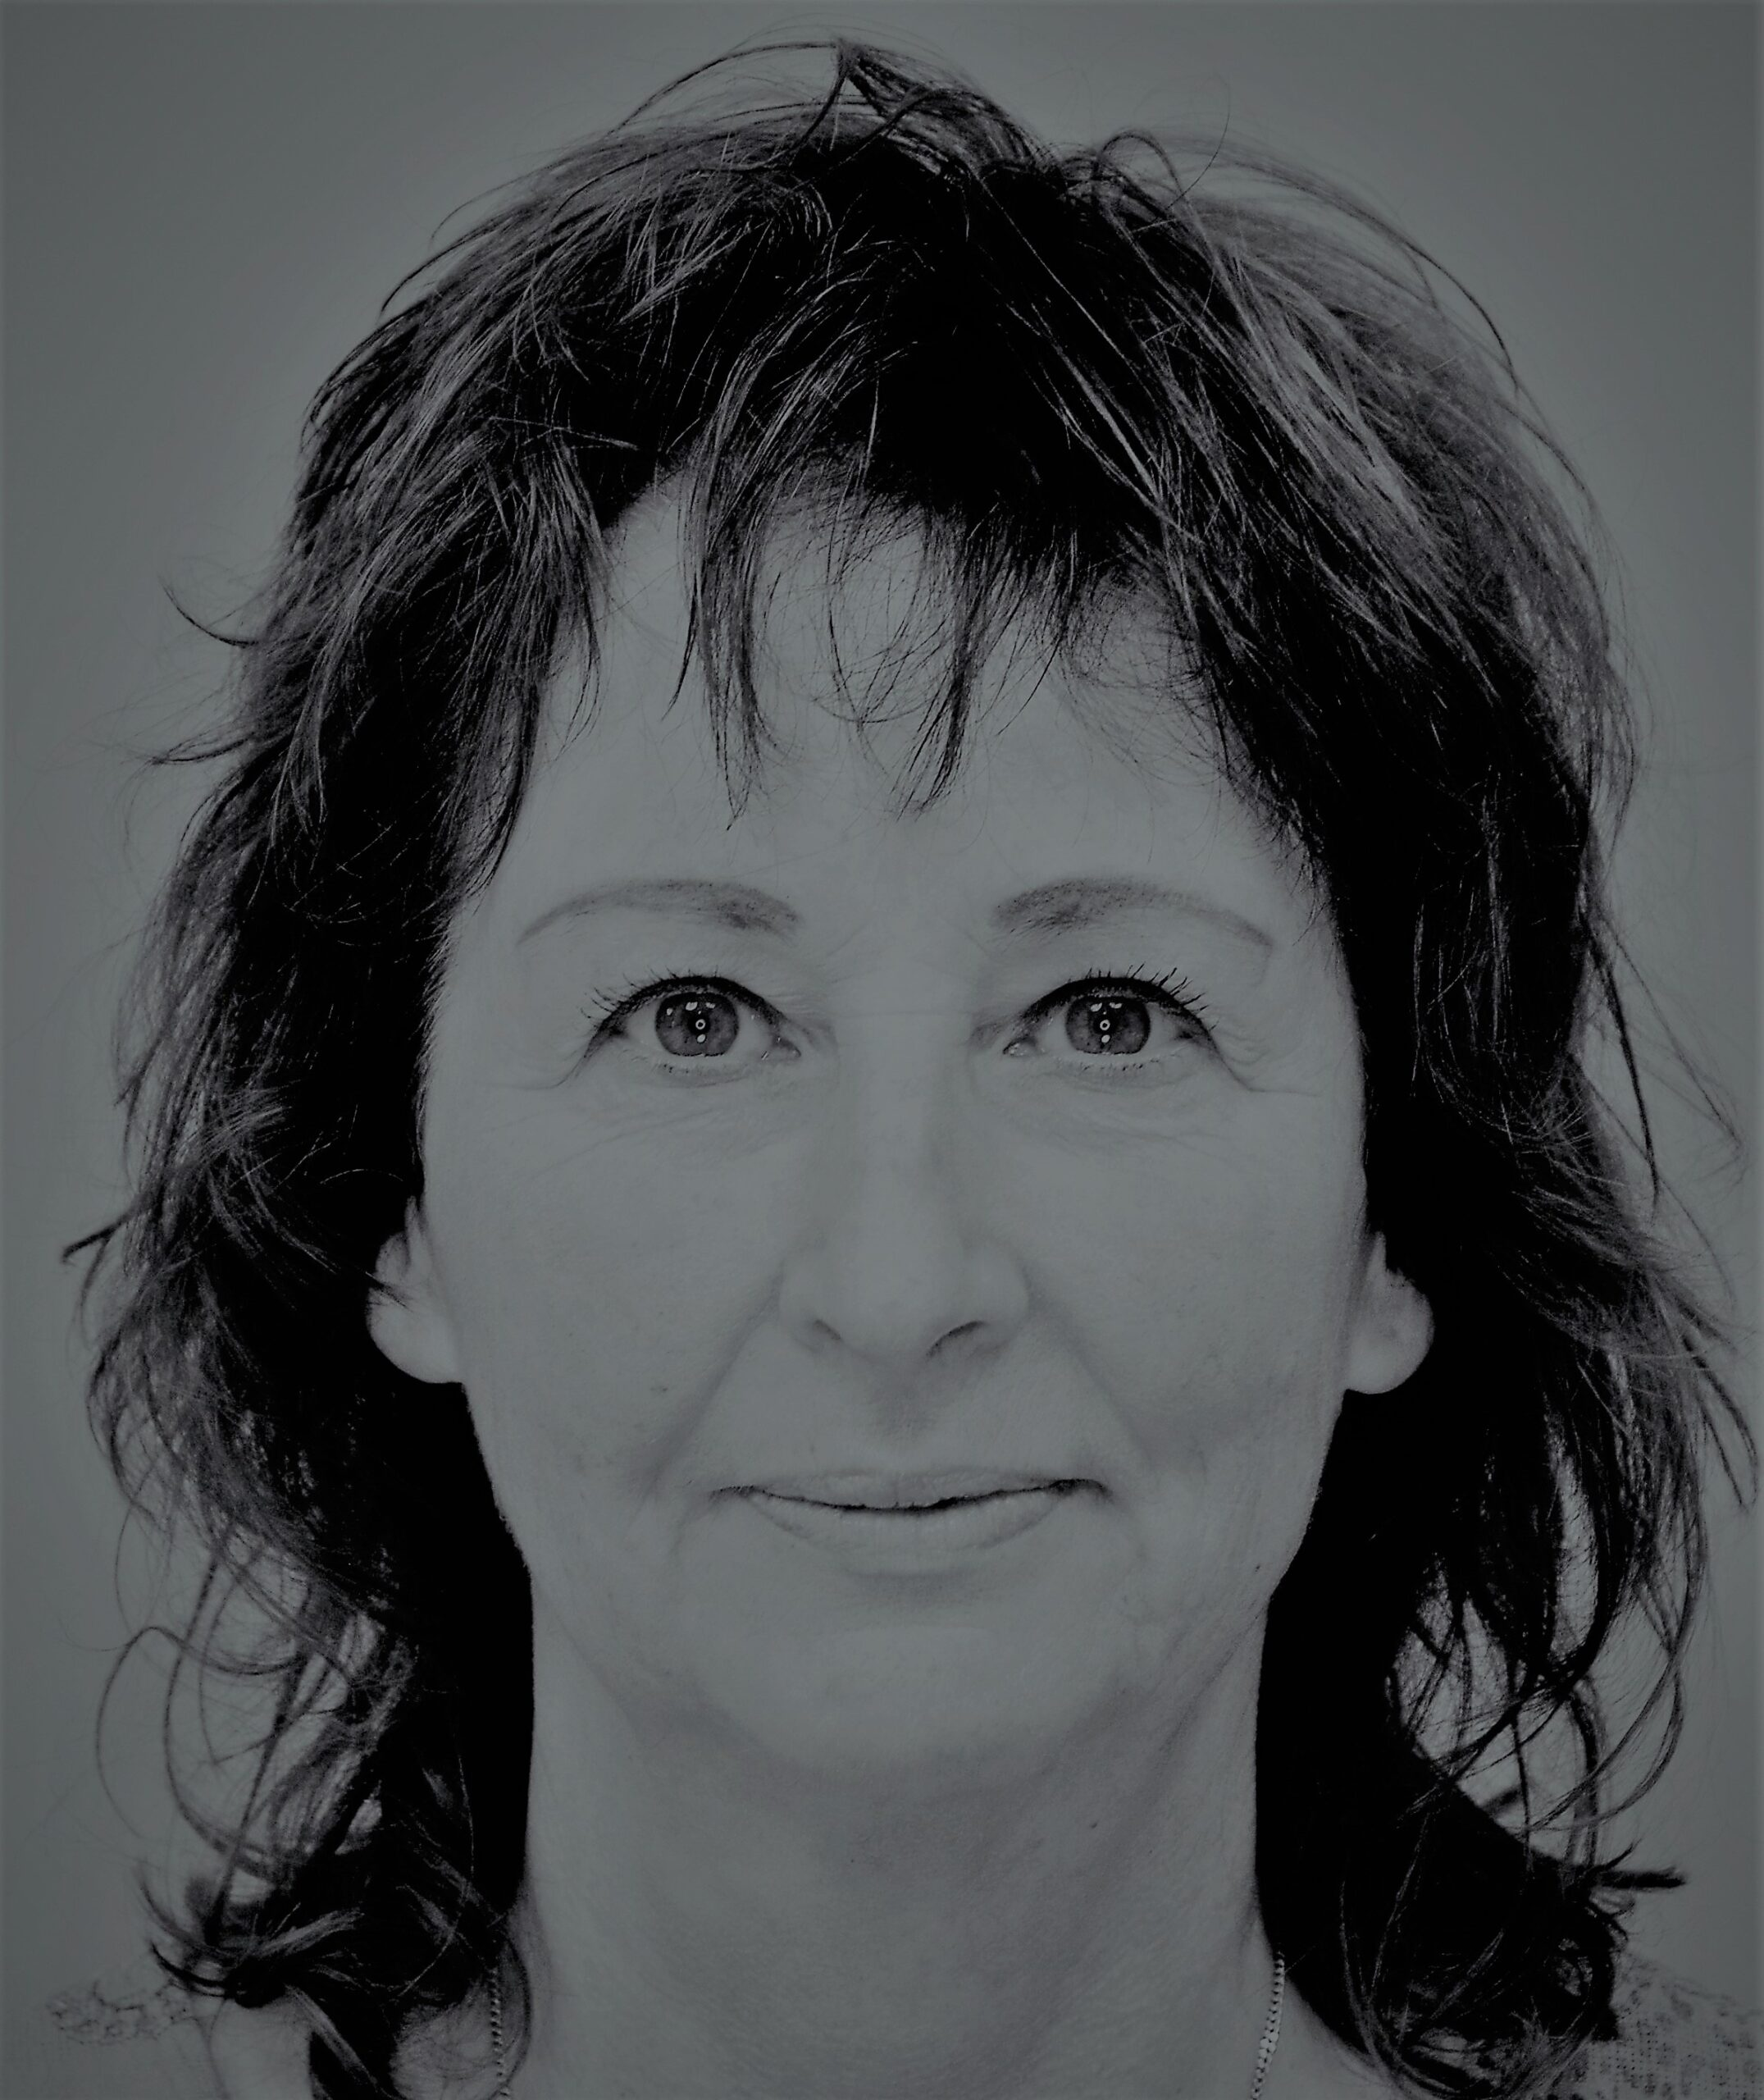 Monique Kuijpers